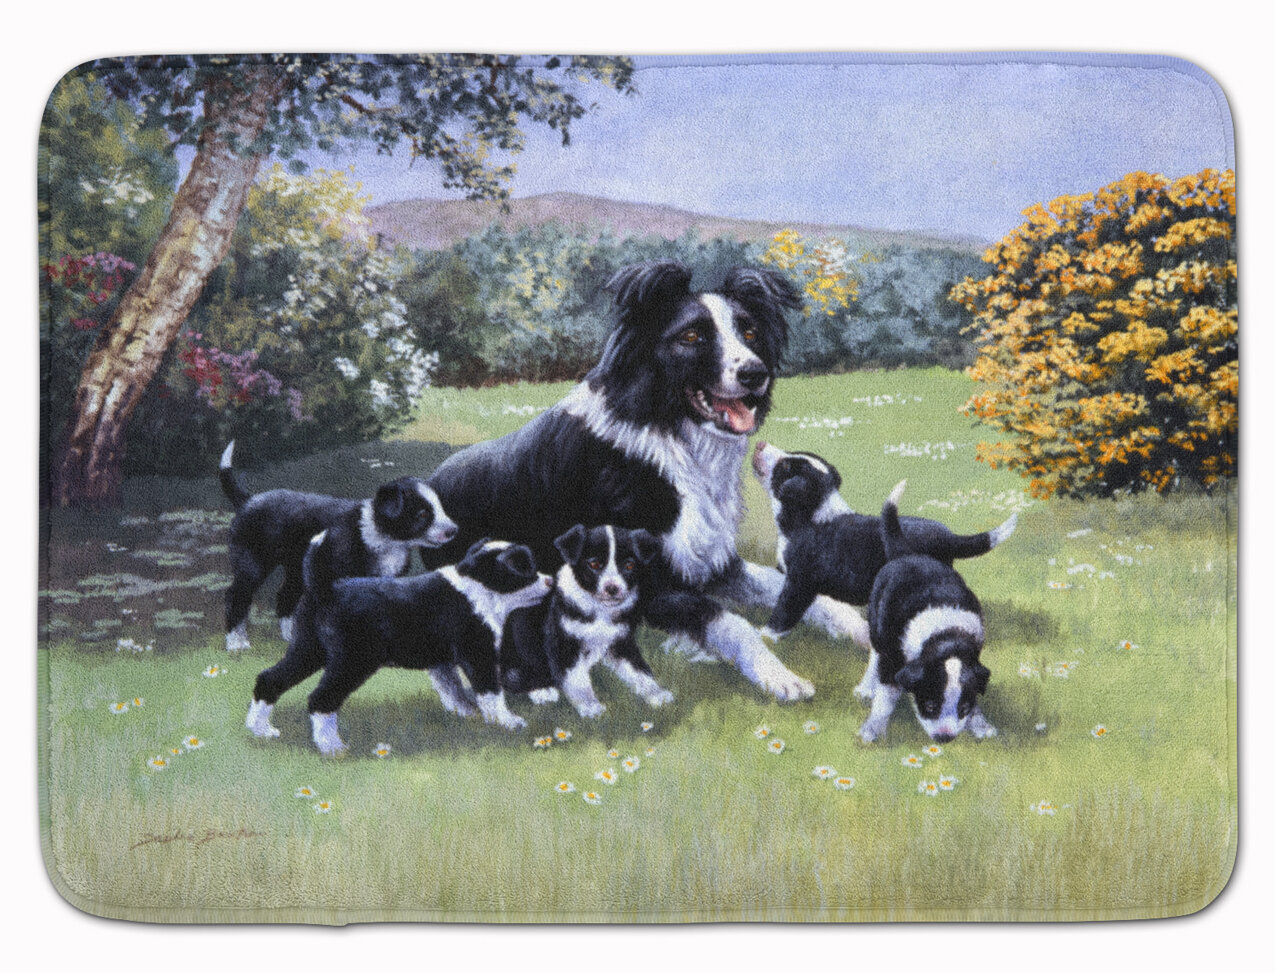 East Urban Home Border Collie Puppies With Momma Rectangle Microfiber Non Slip Bath Rug Wayfair